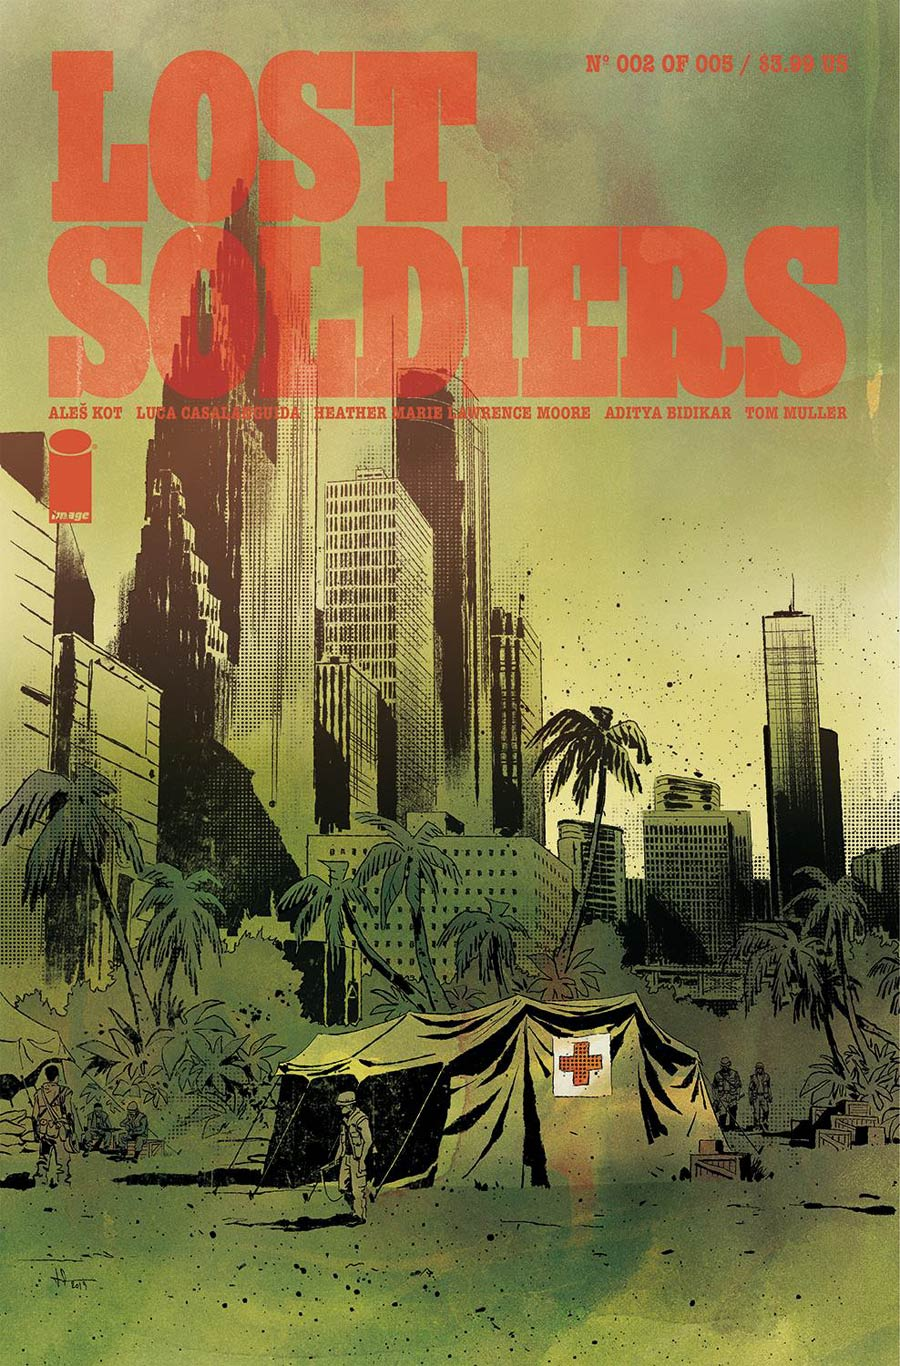 Lost Soldiers #2 (2020)